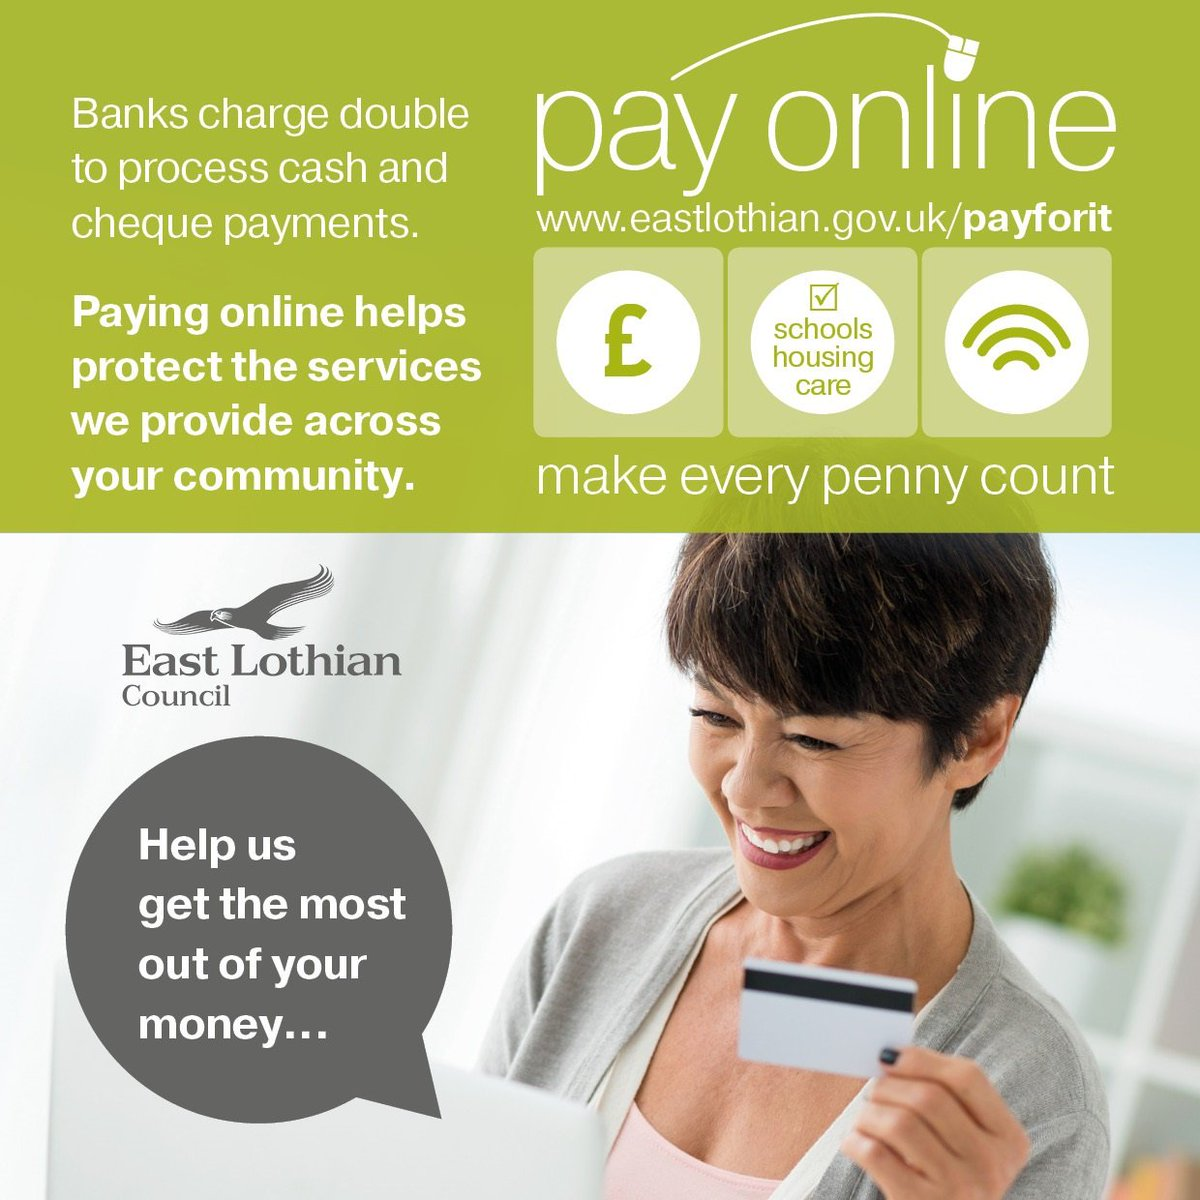 test Twitter Media - Are you paying for a council service like council tax, rent or a planning application? Why not pay online? It's quick, easy, secure & helps us make your money go further by avoiding bank charges. It also saves you having to travel to a local office. https://t.co/X8ph6y59Tw https://t.co/n21JenJo2K